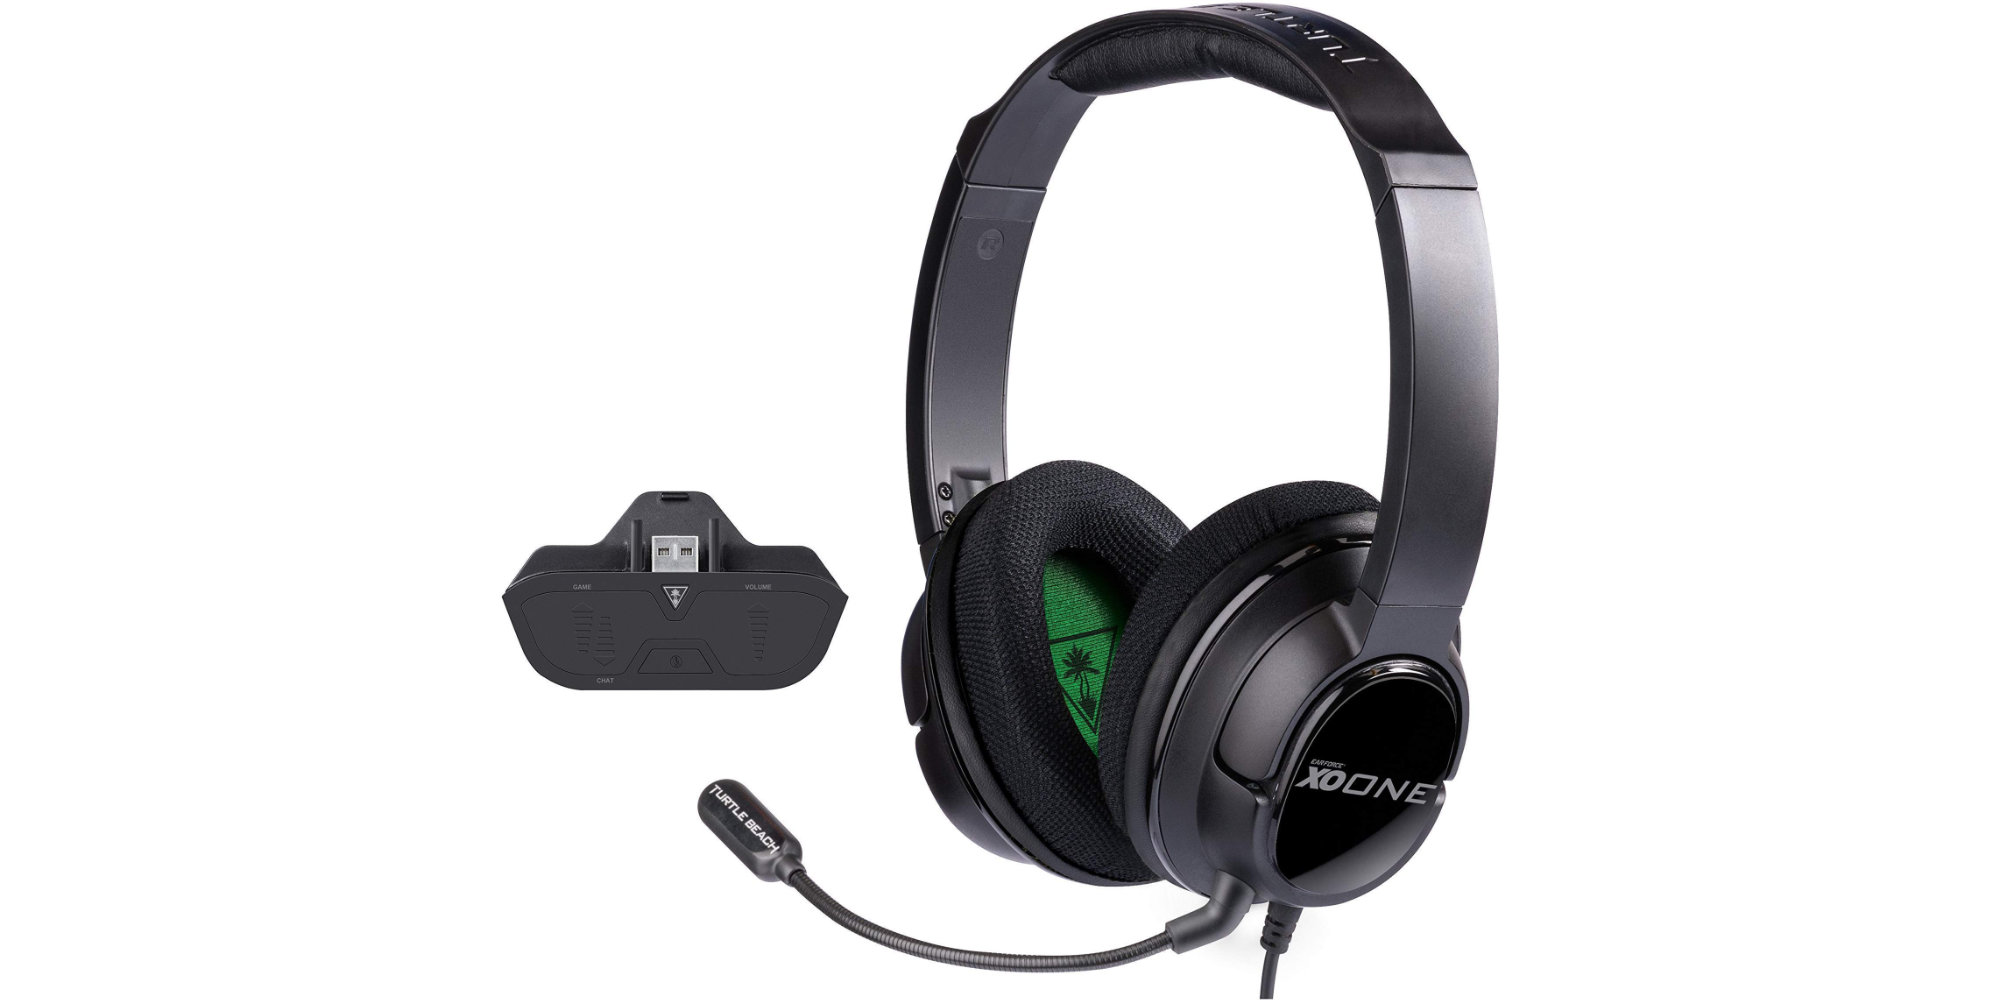 This Turtle Beach Ear Force One Headset is paired w/ a Xbox audio controller: $47 (Save $20)